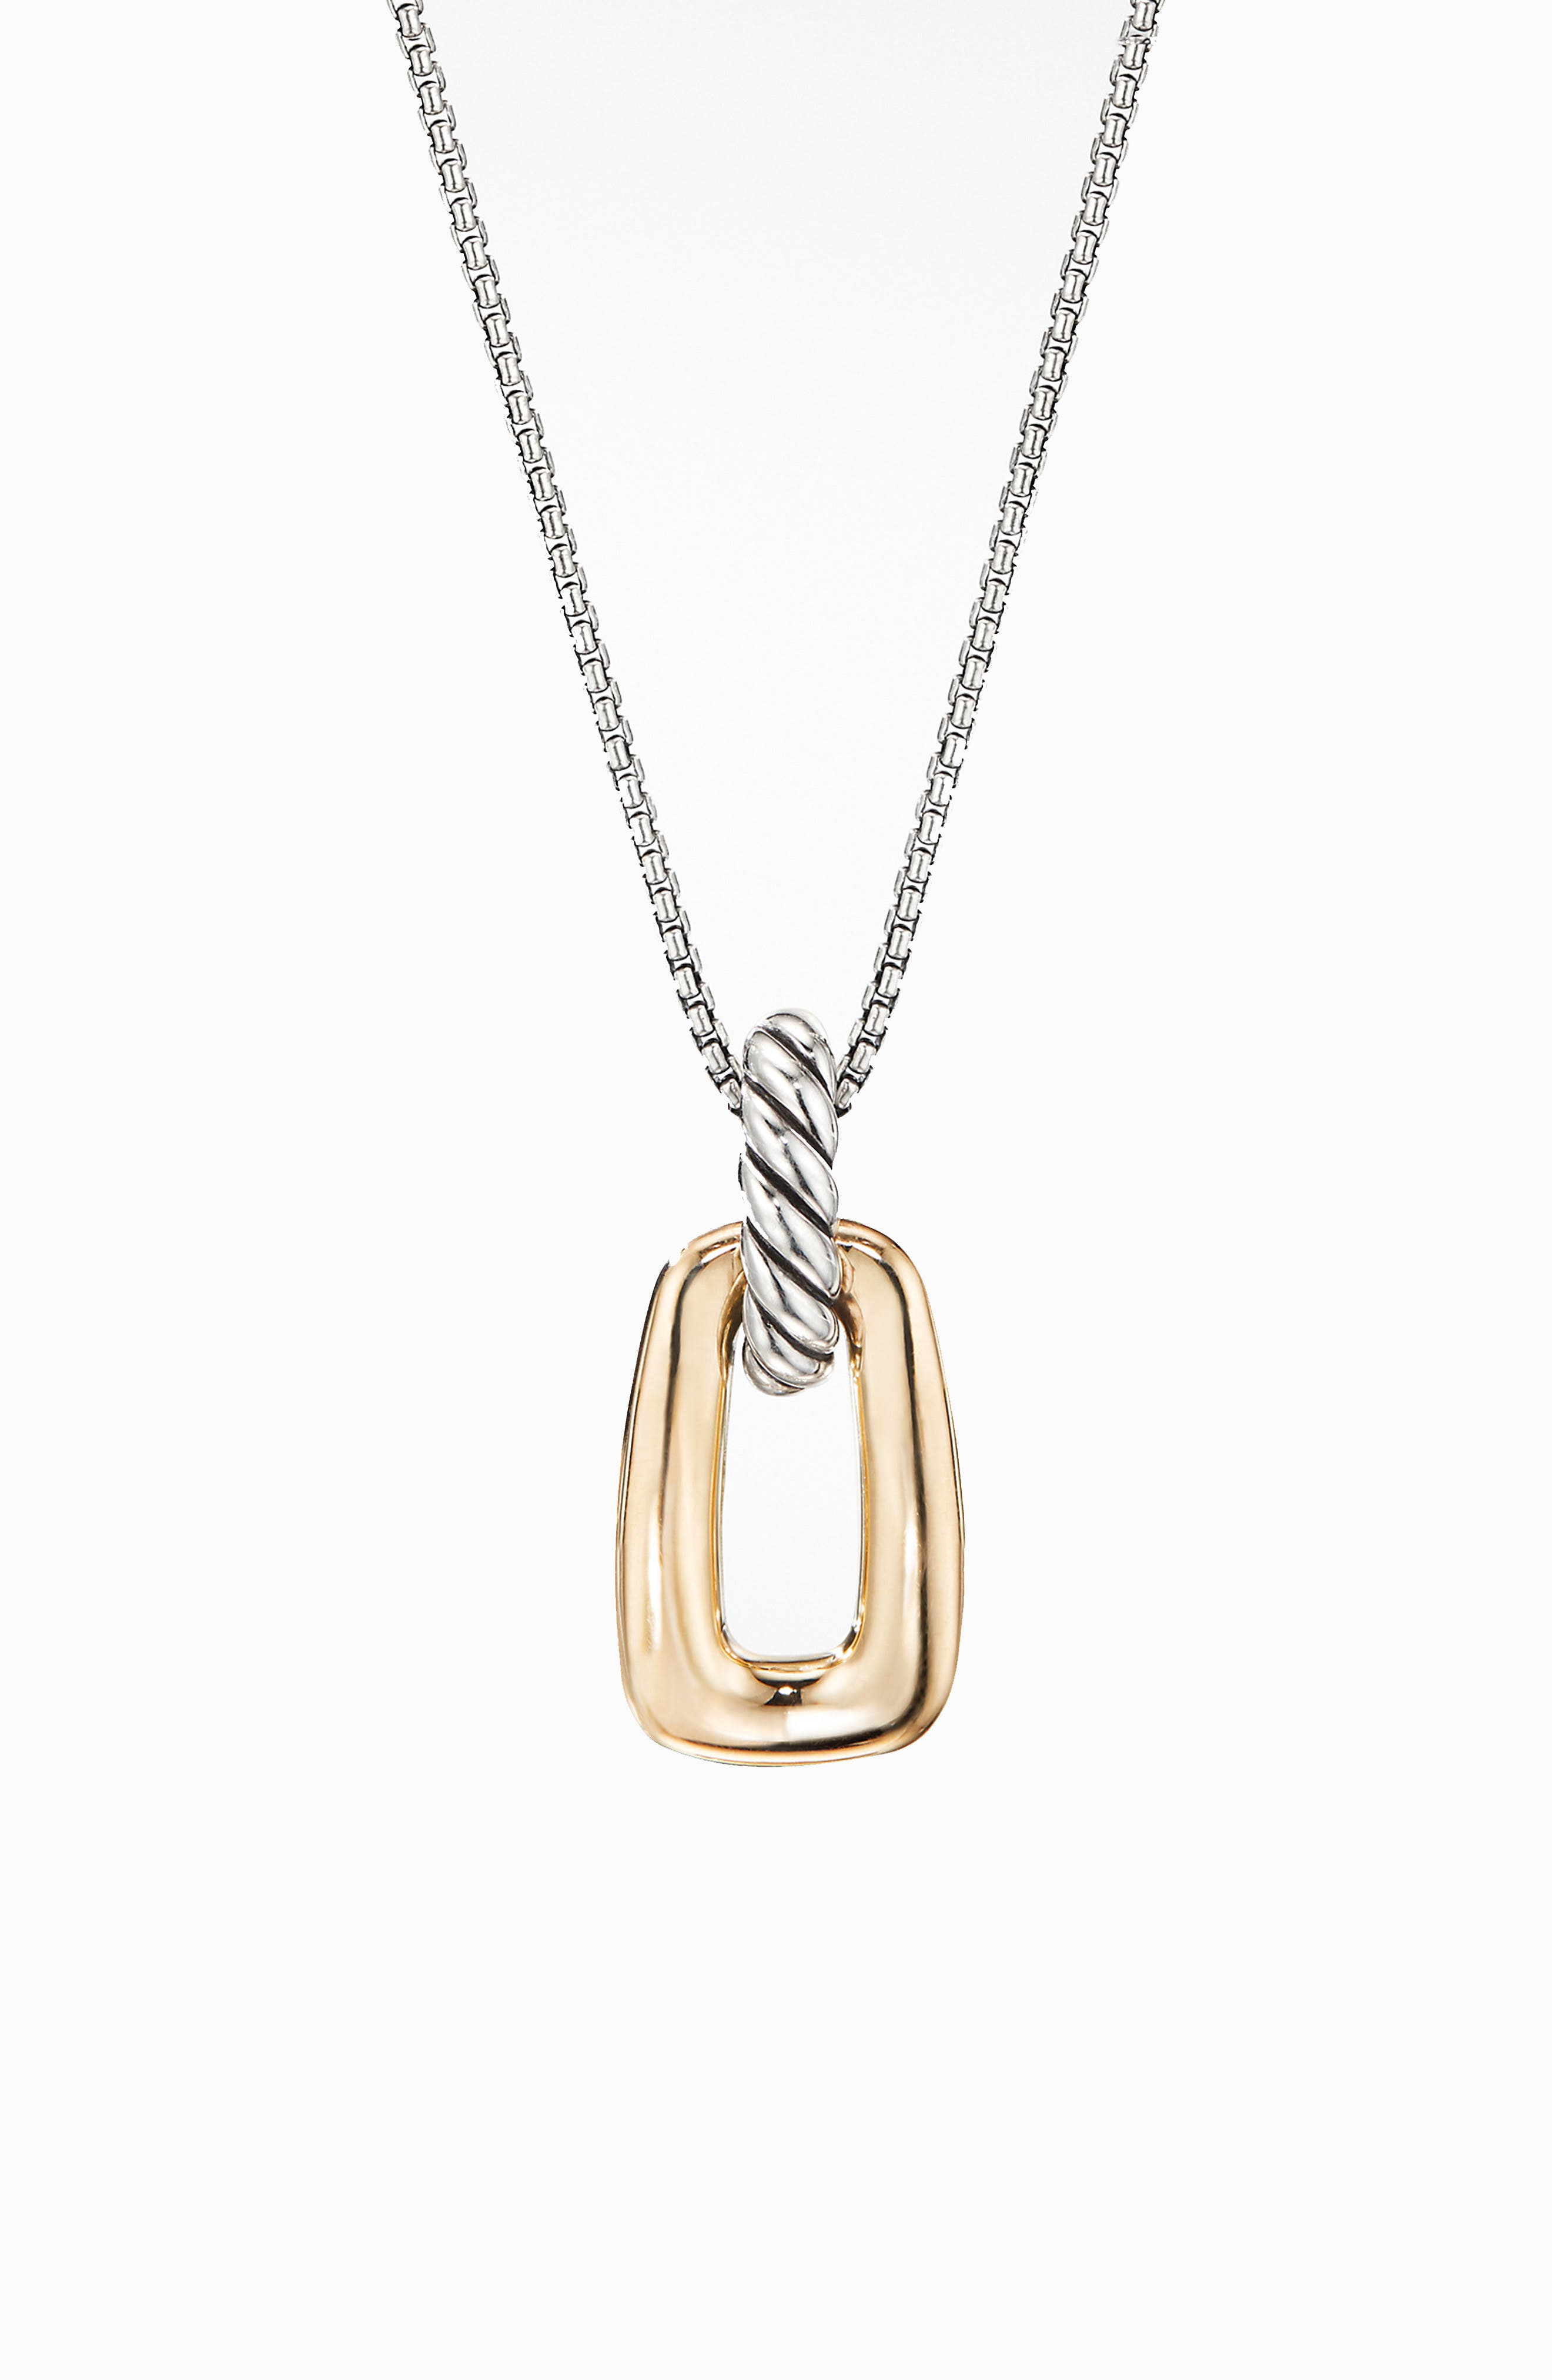 Wellesley Link Pendant Necklace with 18K Gold,                             Main thumbnail 1, color,                             18K YELLOW GOLD/ SILVER